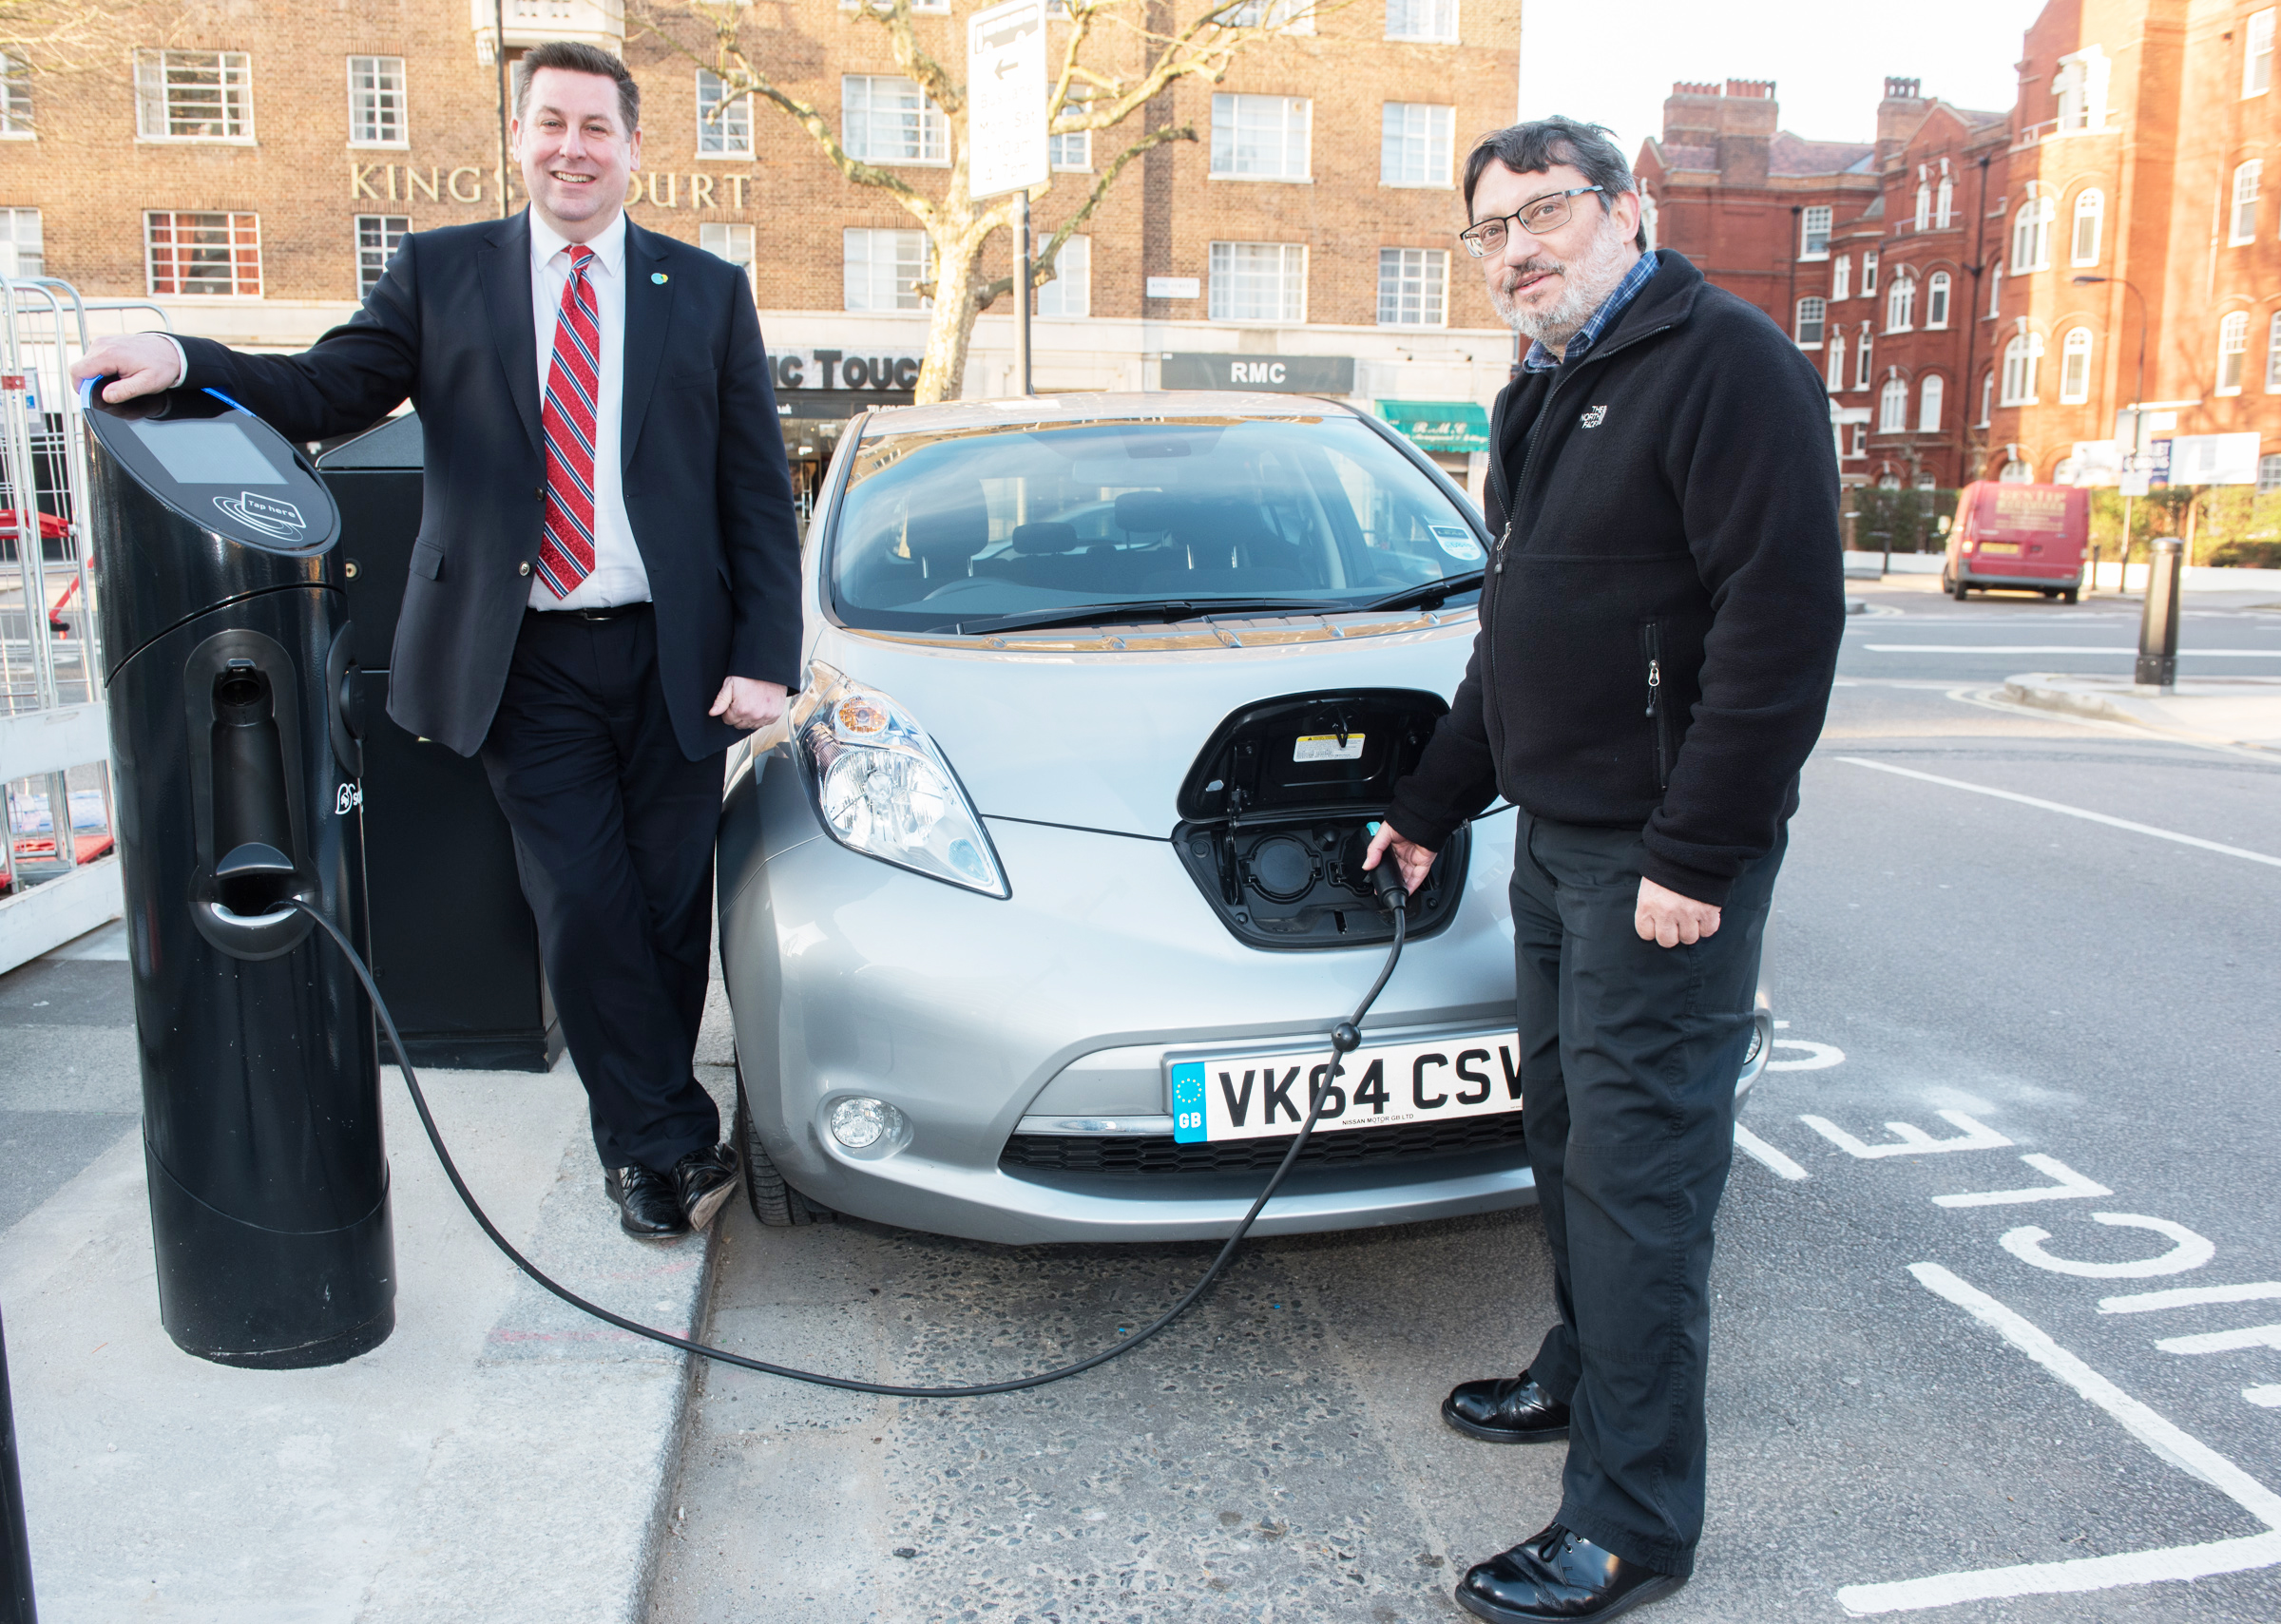 H&F Council Leader Stephen Cowan and Cllr Wesley Harcourt get charged up in Standish Road, Hammersmith